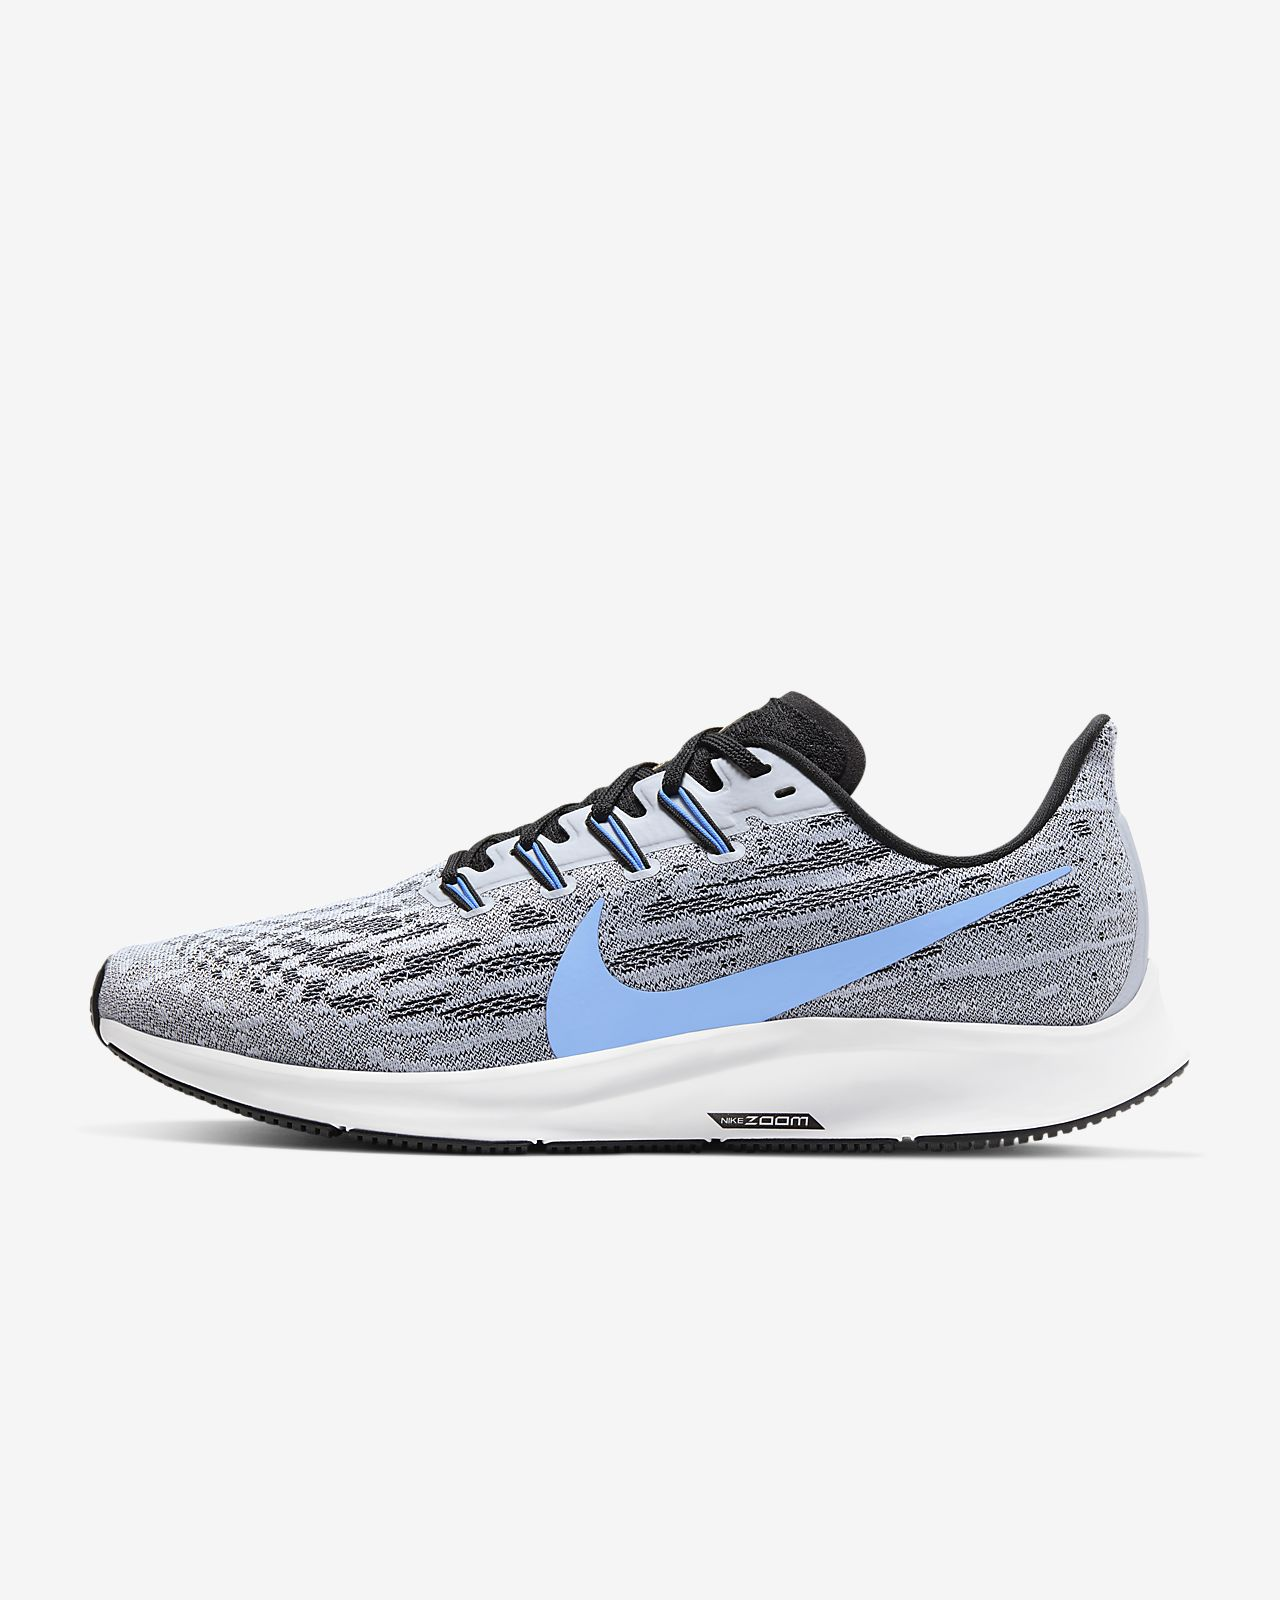 recognized brands wholesale outlet official Chaussure de running Nike Air Zoom Pegasus 36 pour Homme. Nike CH